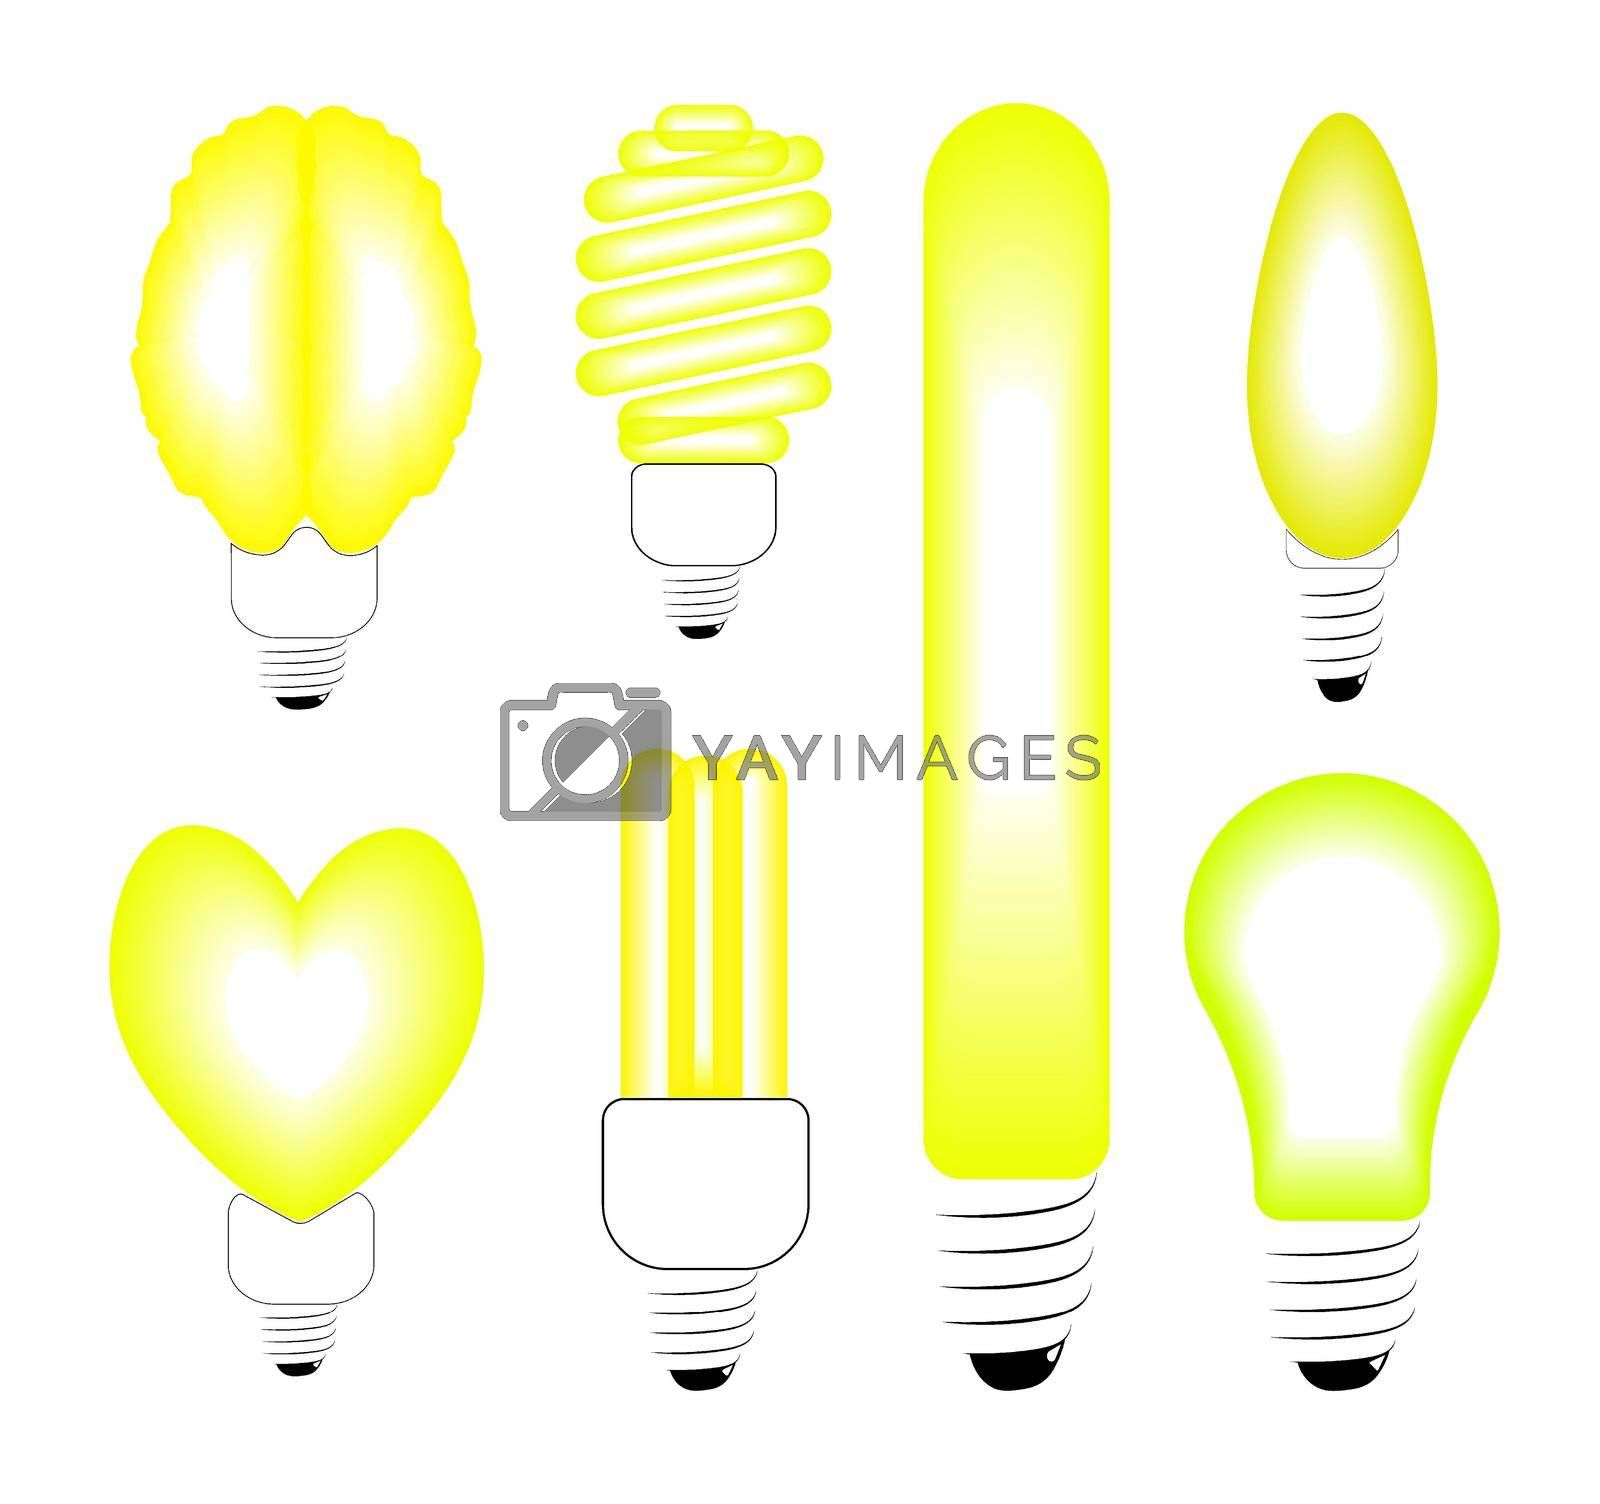 energy saving and incandescent bulbs of unusual shape in black and yellow on a white background